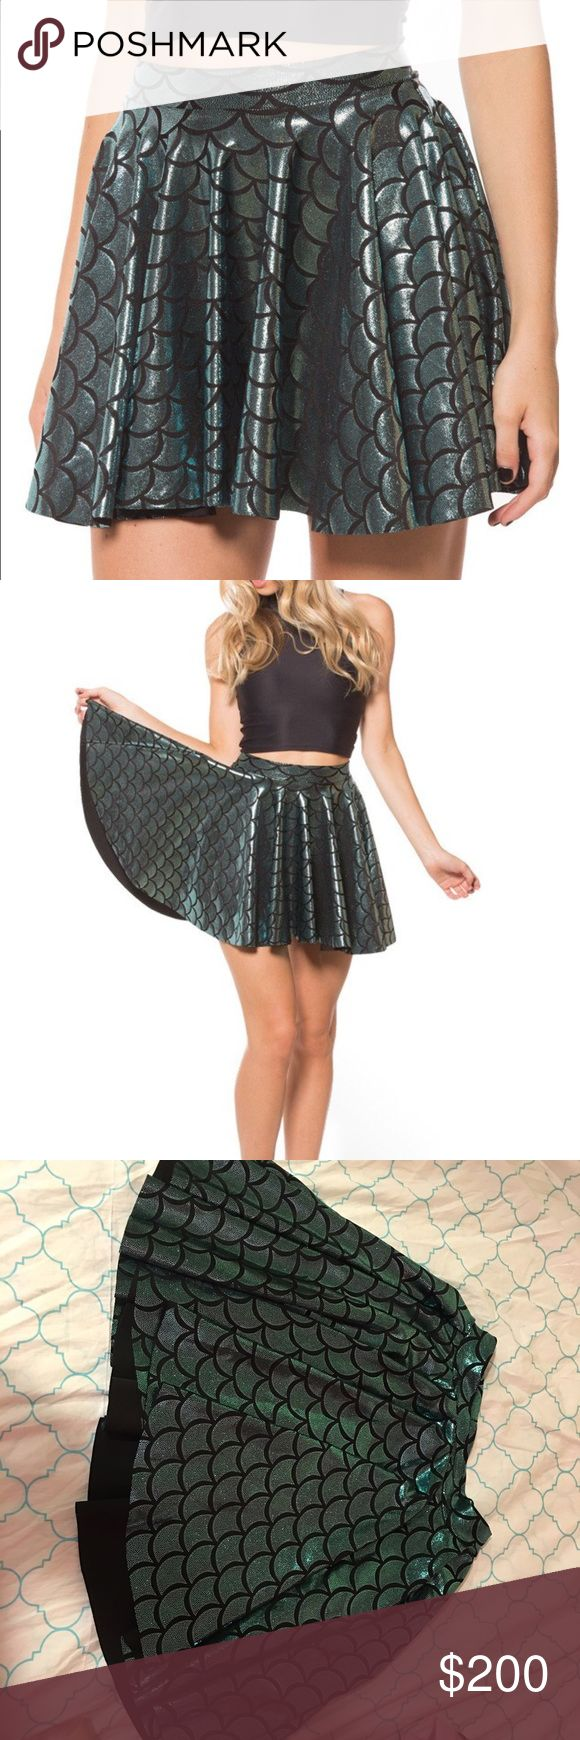 M mermaid cheerleader skirt black milk clothing Size M mermaid cheerleader skirt from black milk clothing! Very stretchy so can fit L too! Shiny, swishy, and fun - and retired from their website! Check my closet for more black milk :) Will take less on ️️ or swap for other BM, wildfox, or Unif  Blackmilk Skirts Circle & Skater